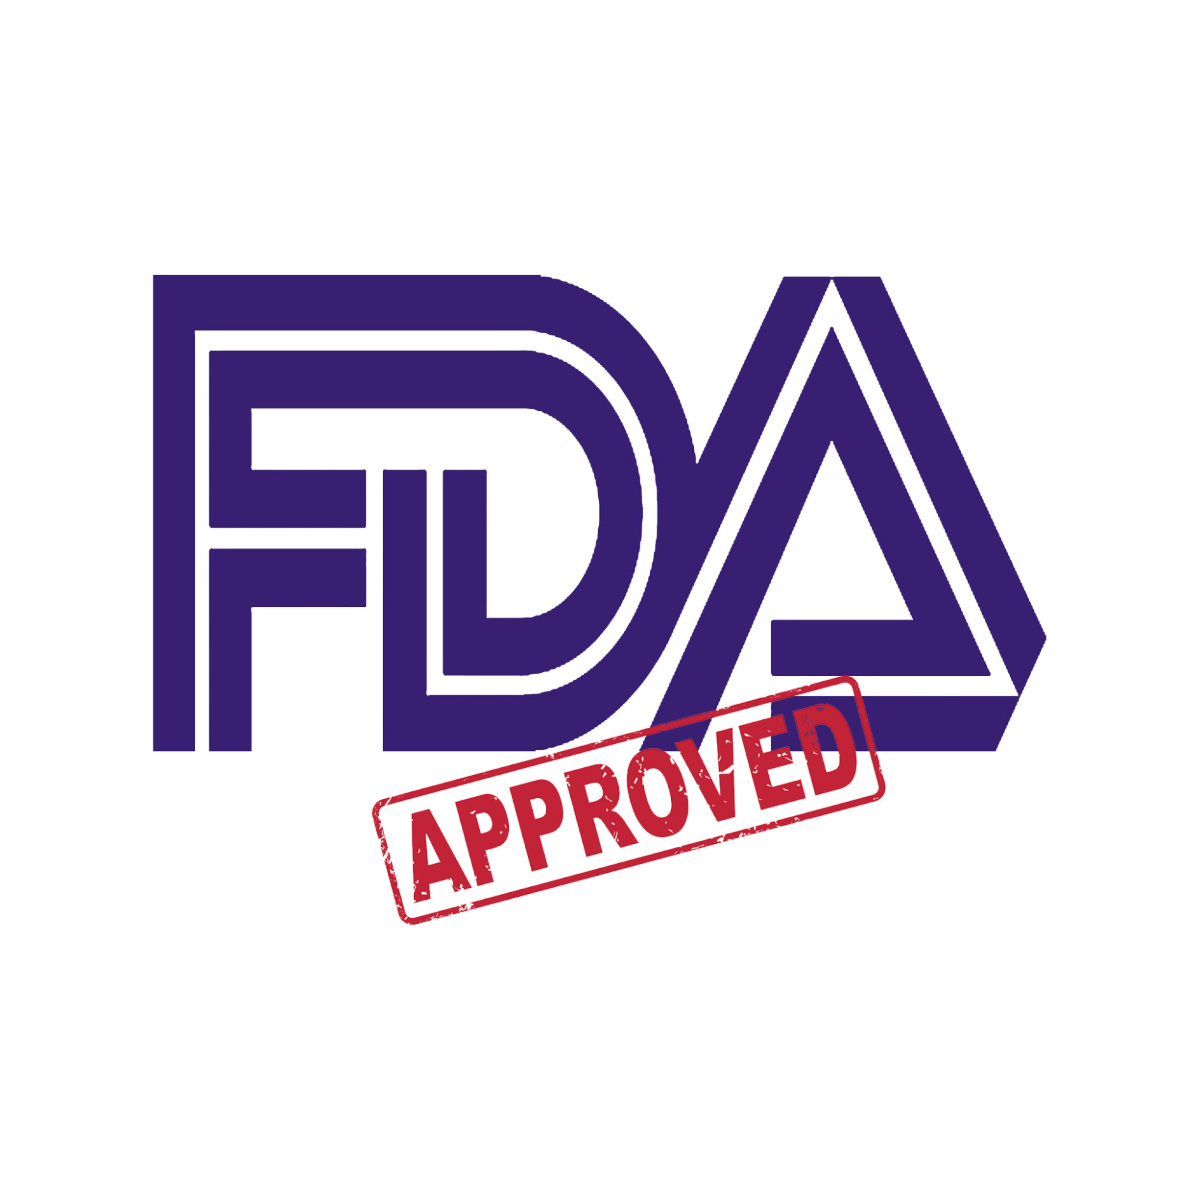 FDA Grants Accelerated Approval to Gilead's Trodelvy® for the Treatment of Metastatic Urothelial Cancer